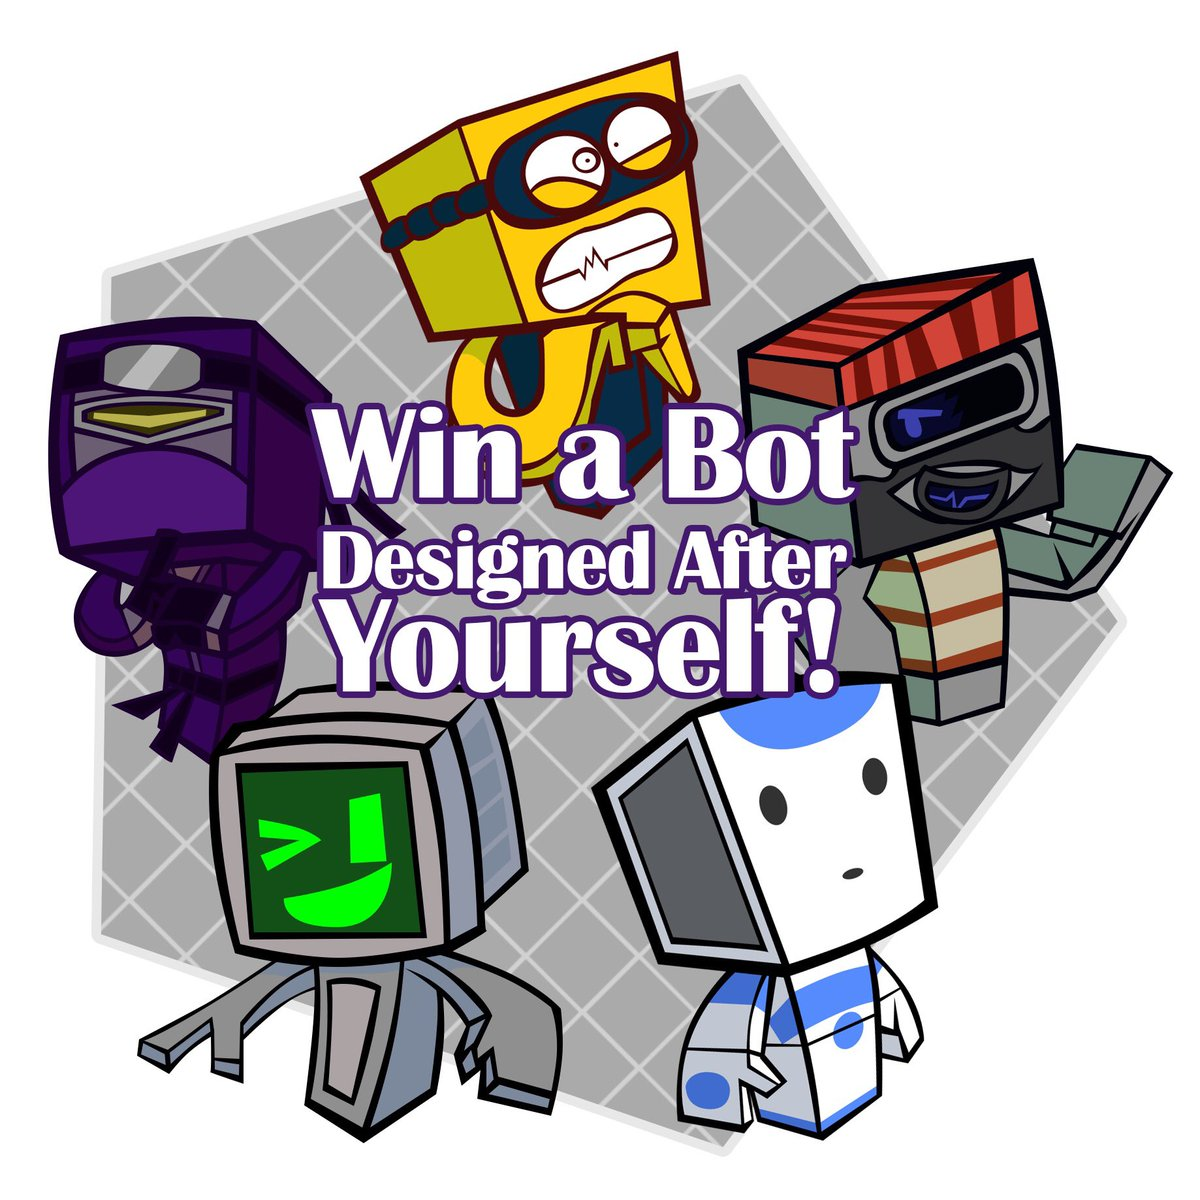 Jandel Roblox On Twitter With The Release Of Battle Bots Just